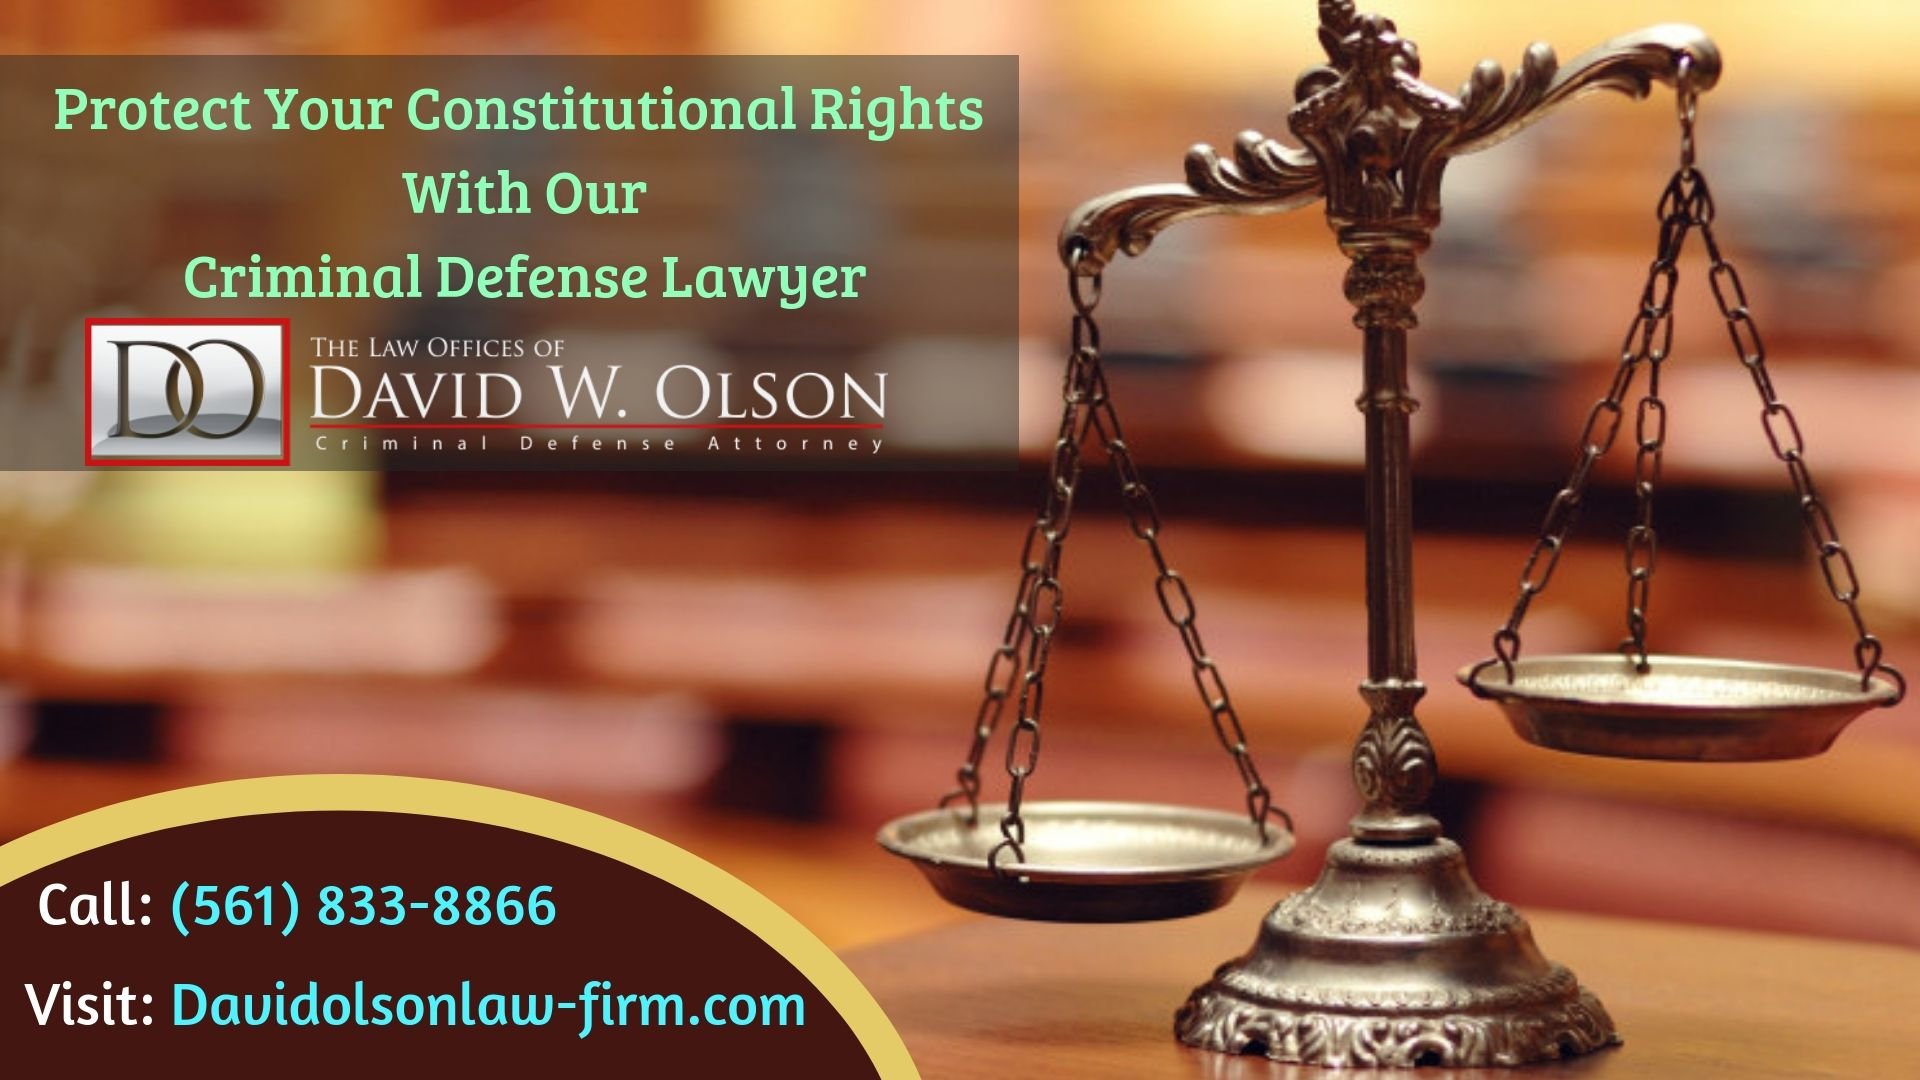 Pin By Davidolson Law On Criminal Law Law Justice Lawyer Law